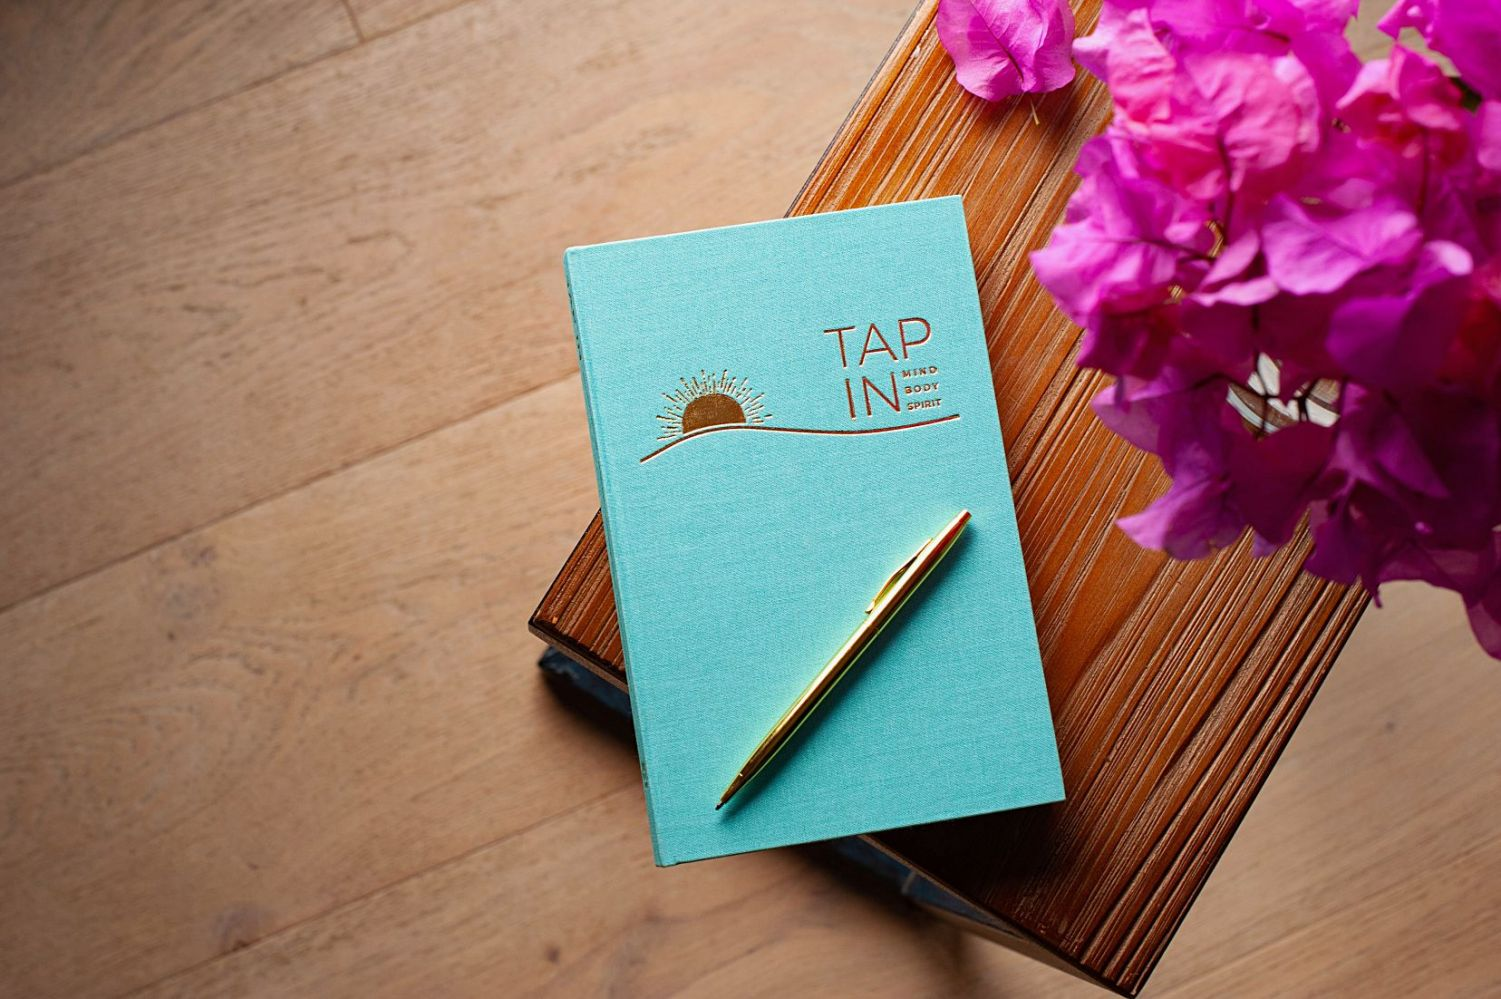 TAP IN wellness journal has a seafoam blue linen cover and gold foil writing